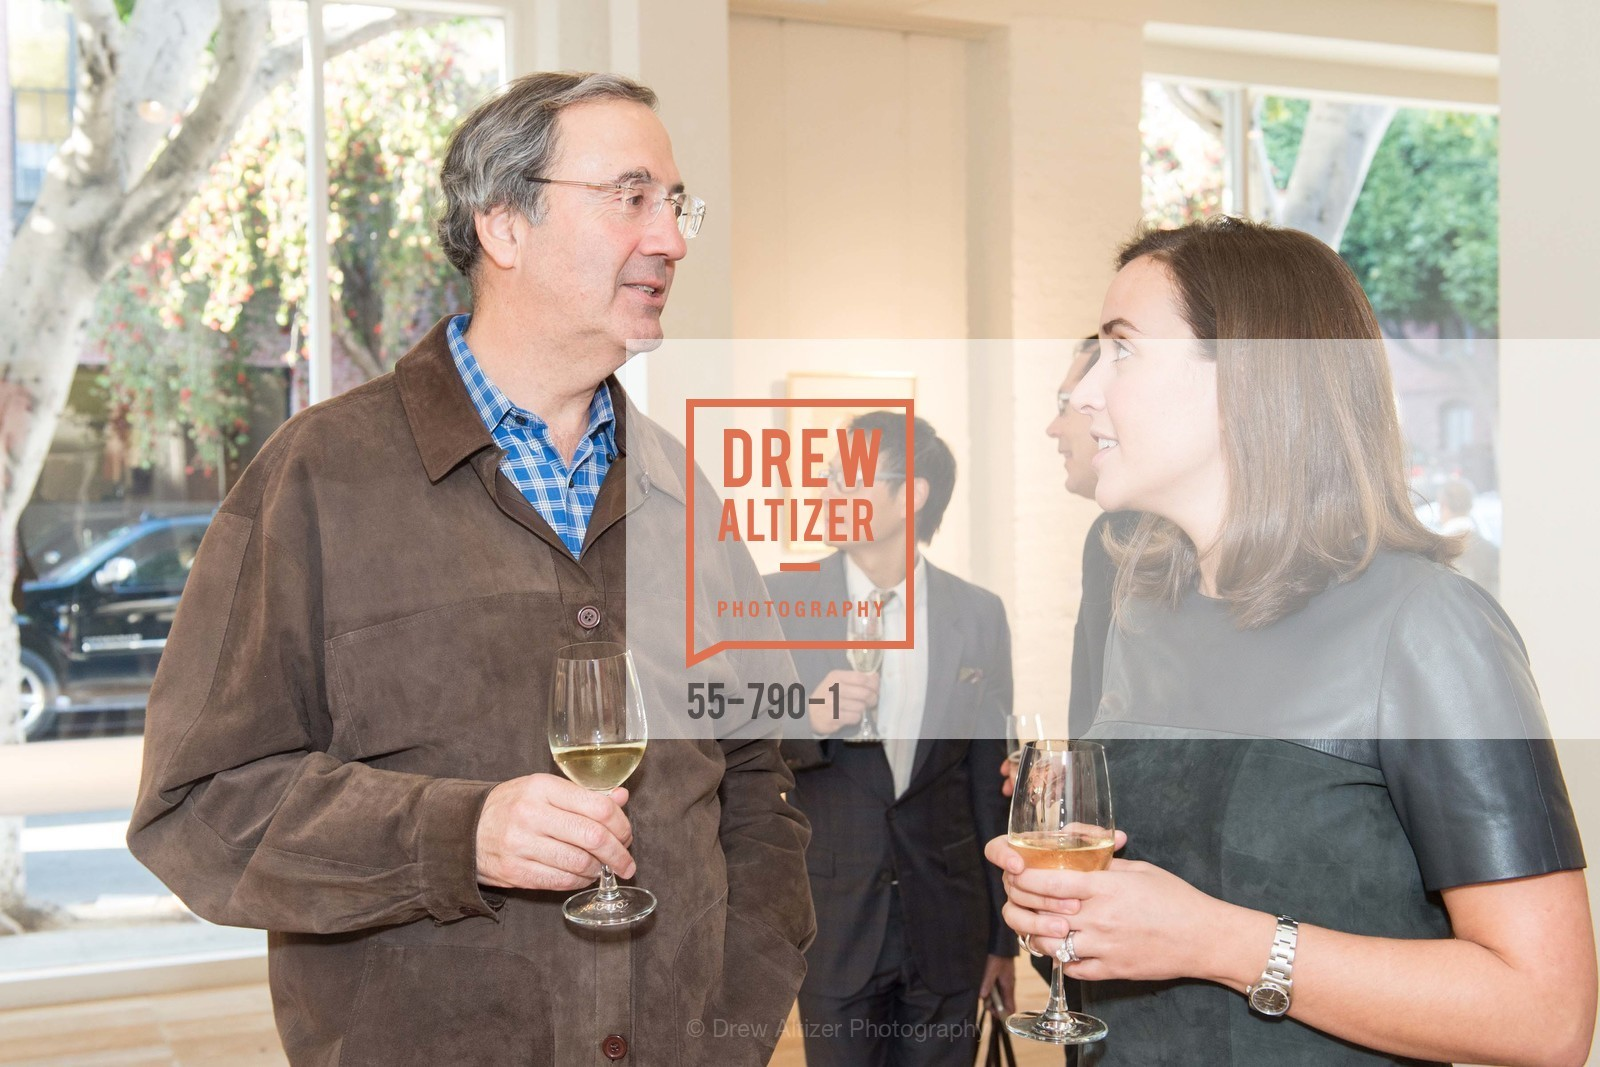 Fred Giuffrida, Saara Pritchard, Post War and Contemporary Preview at HEDGE GALLERY, US, April 15th, 2015,Drew Altizer, Drew Altizer Photography, full-service agency, private events, San Francisco photographer, photographer california